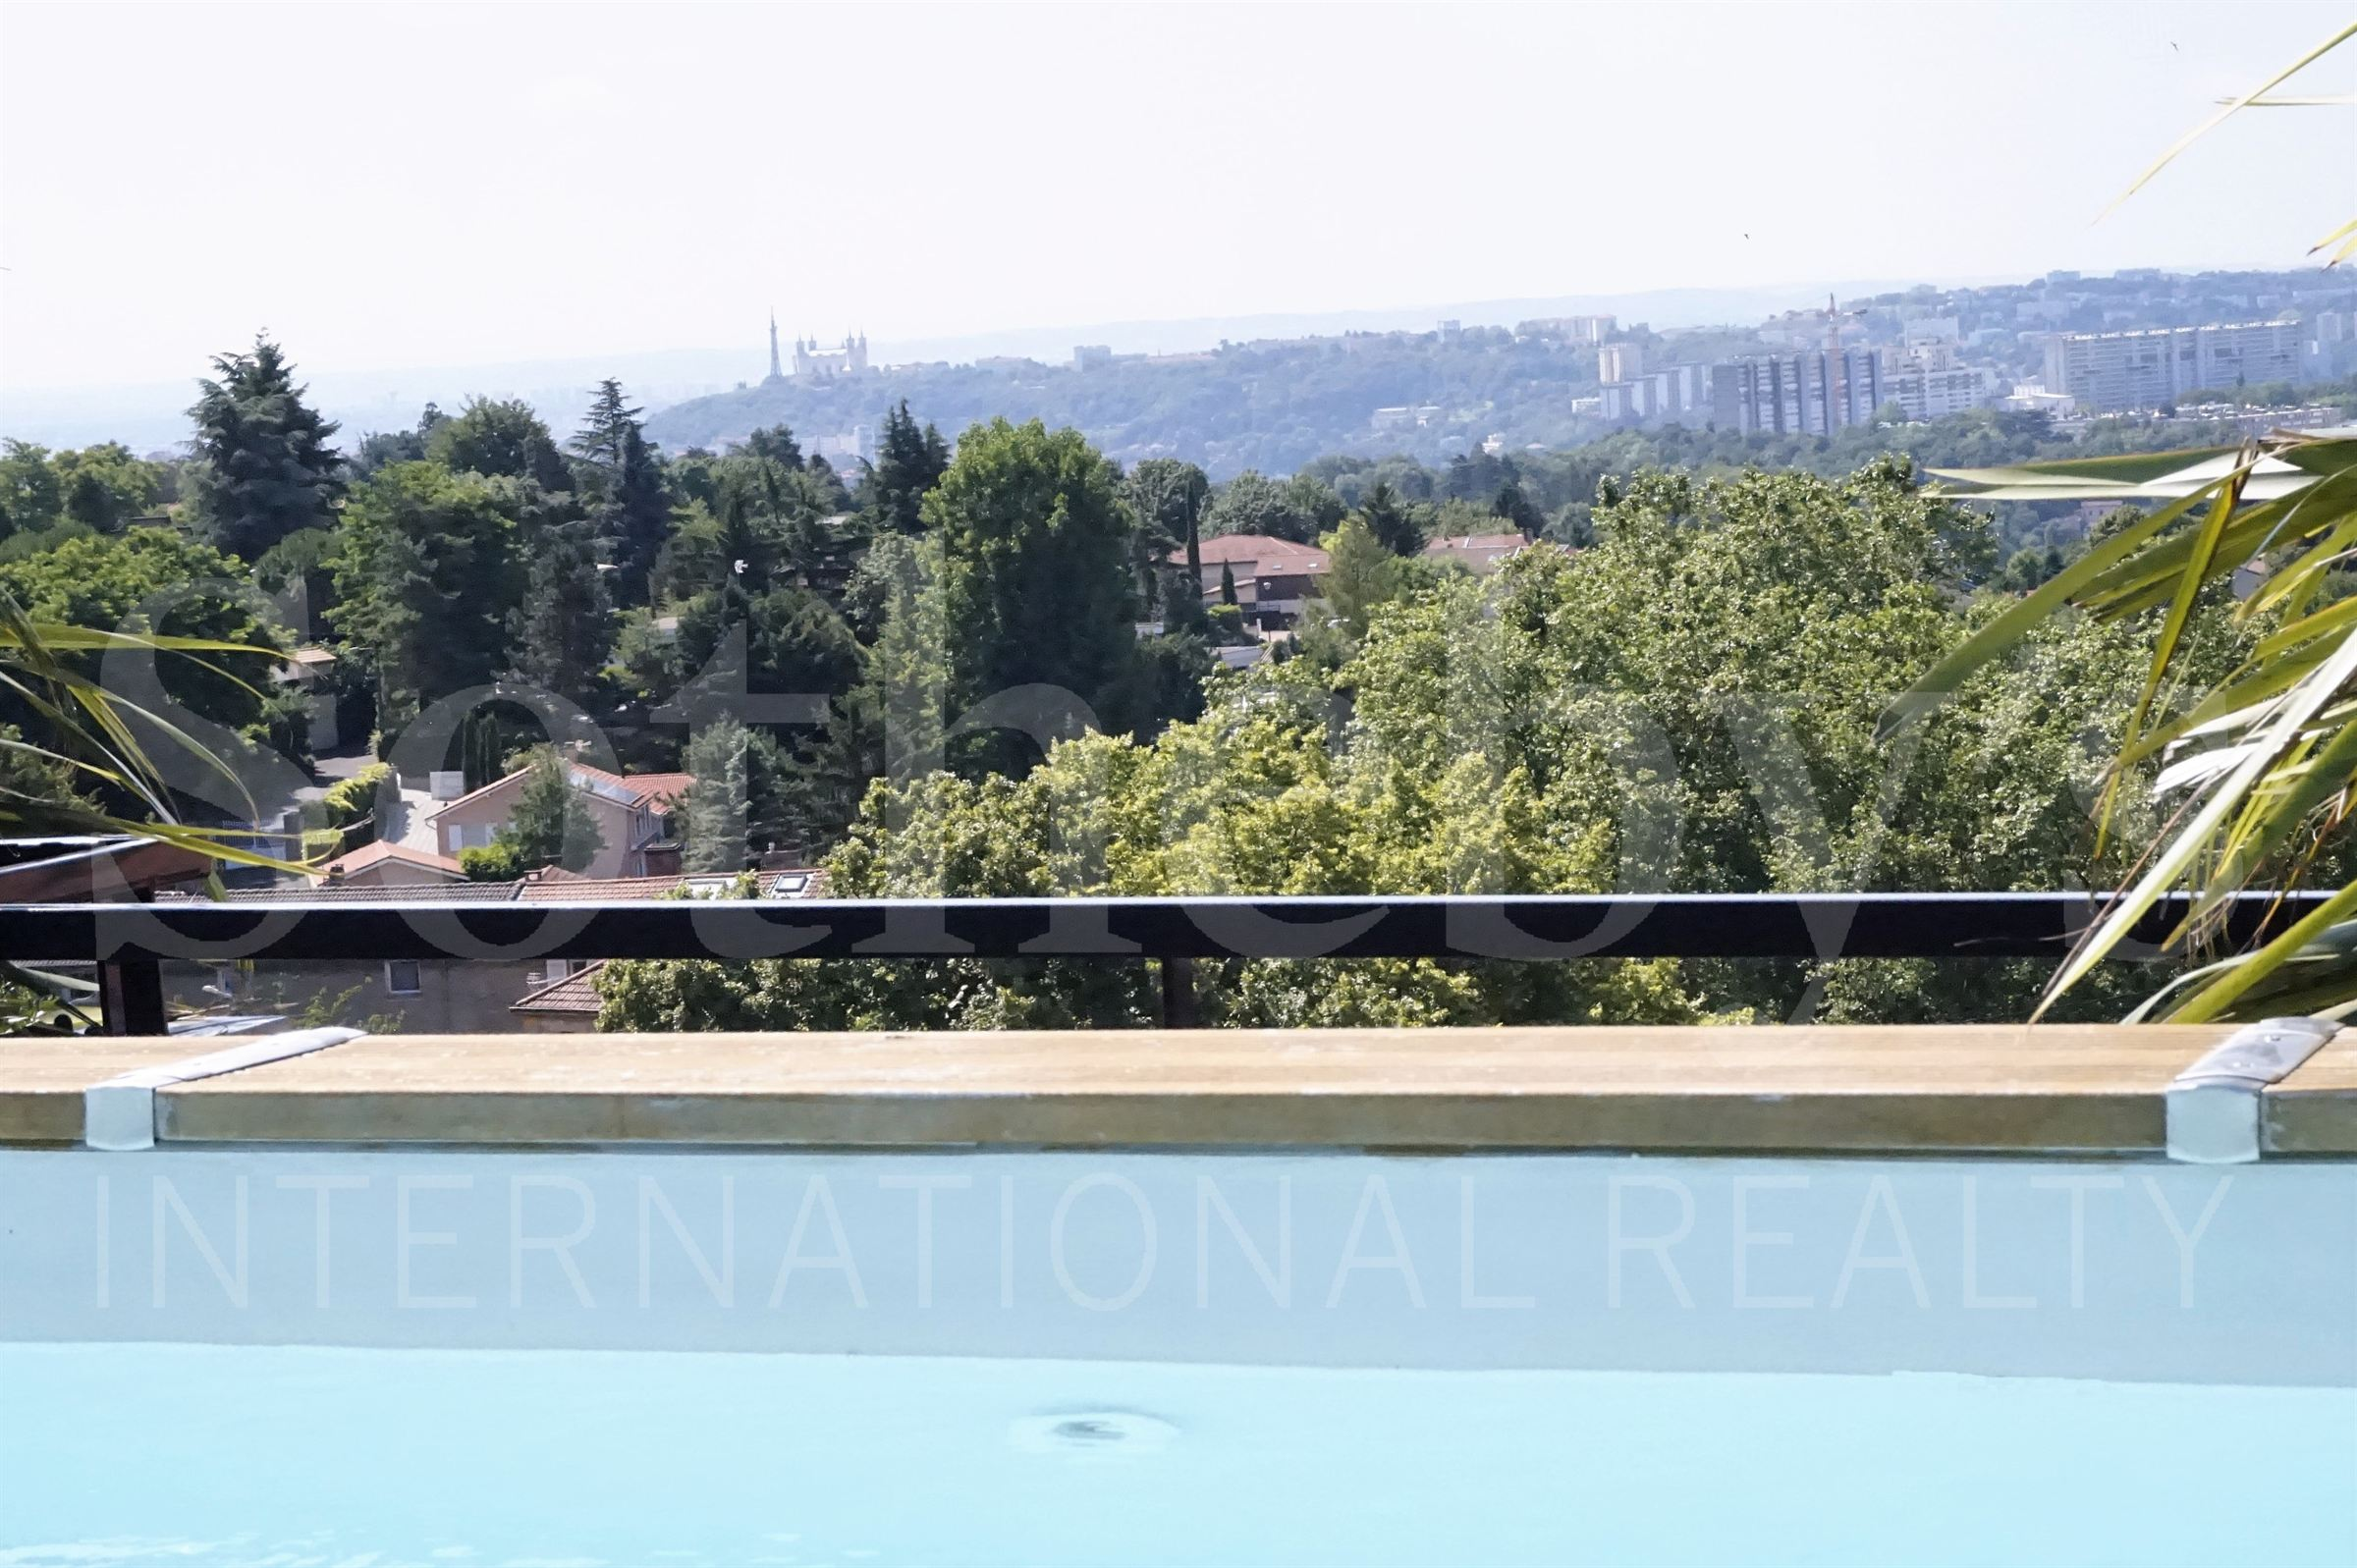 Apartment for Sale at SAINT DIDIER AU MONT D'OR - HOUSE ON THE ROOF WITH PRIVATE POOL Other Rhone-Alpes, Rhone-Alpes, 69370 France